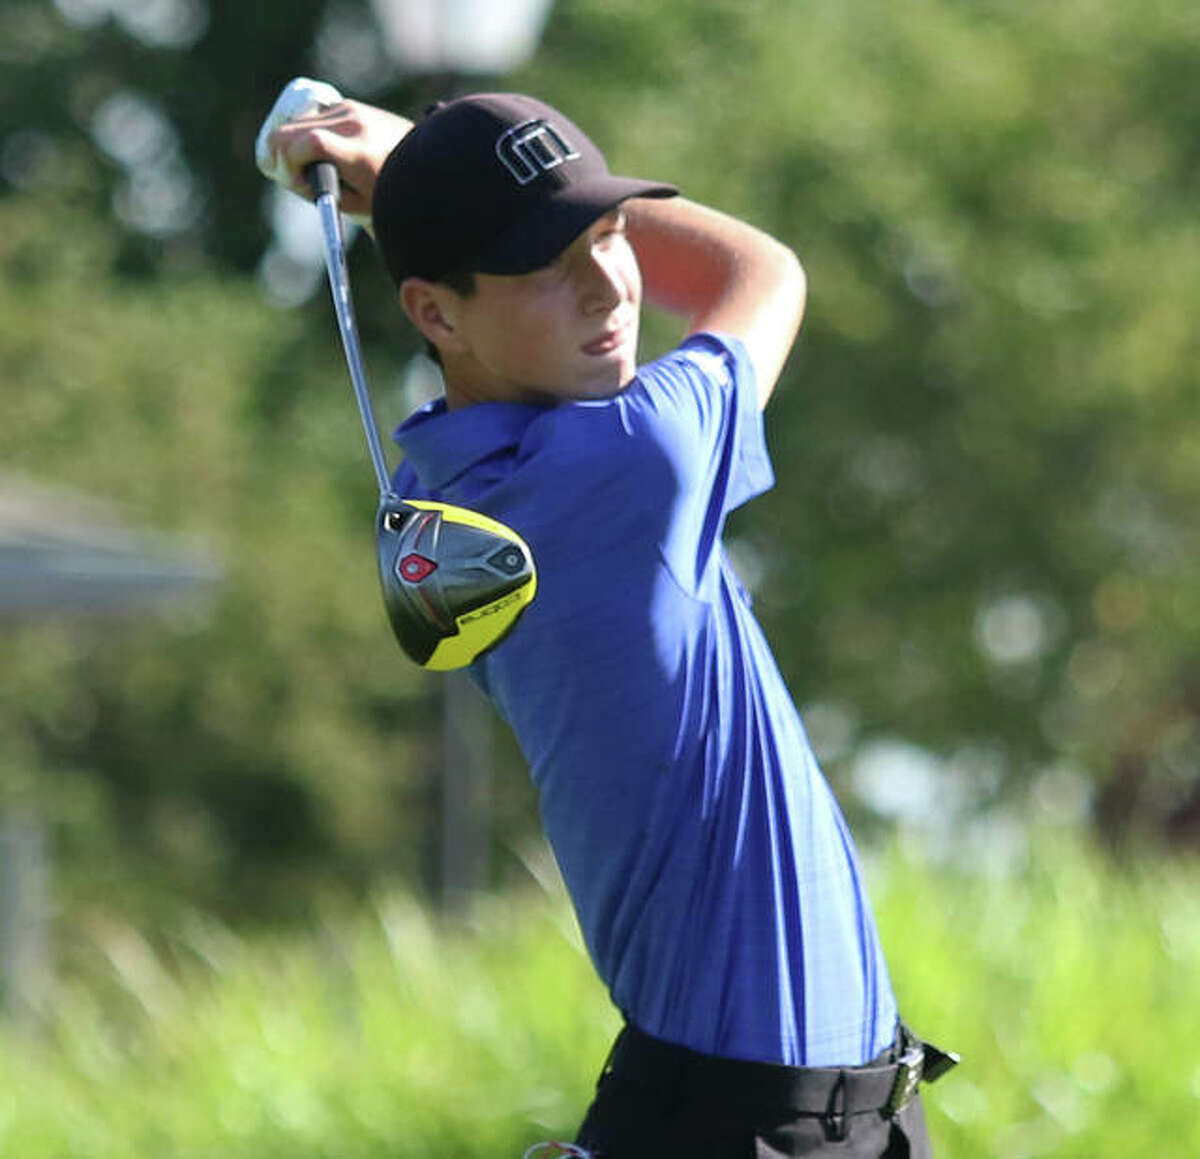 Marquette Catholic's Aidan O'Keefe watches his drive during the Hickory Stick Invite on Monday at Belk Park in Wood River. O'Keefe, a sophomore, tied for fifth with a team-best 77.